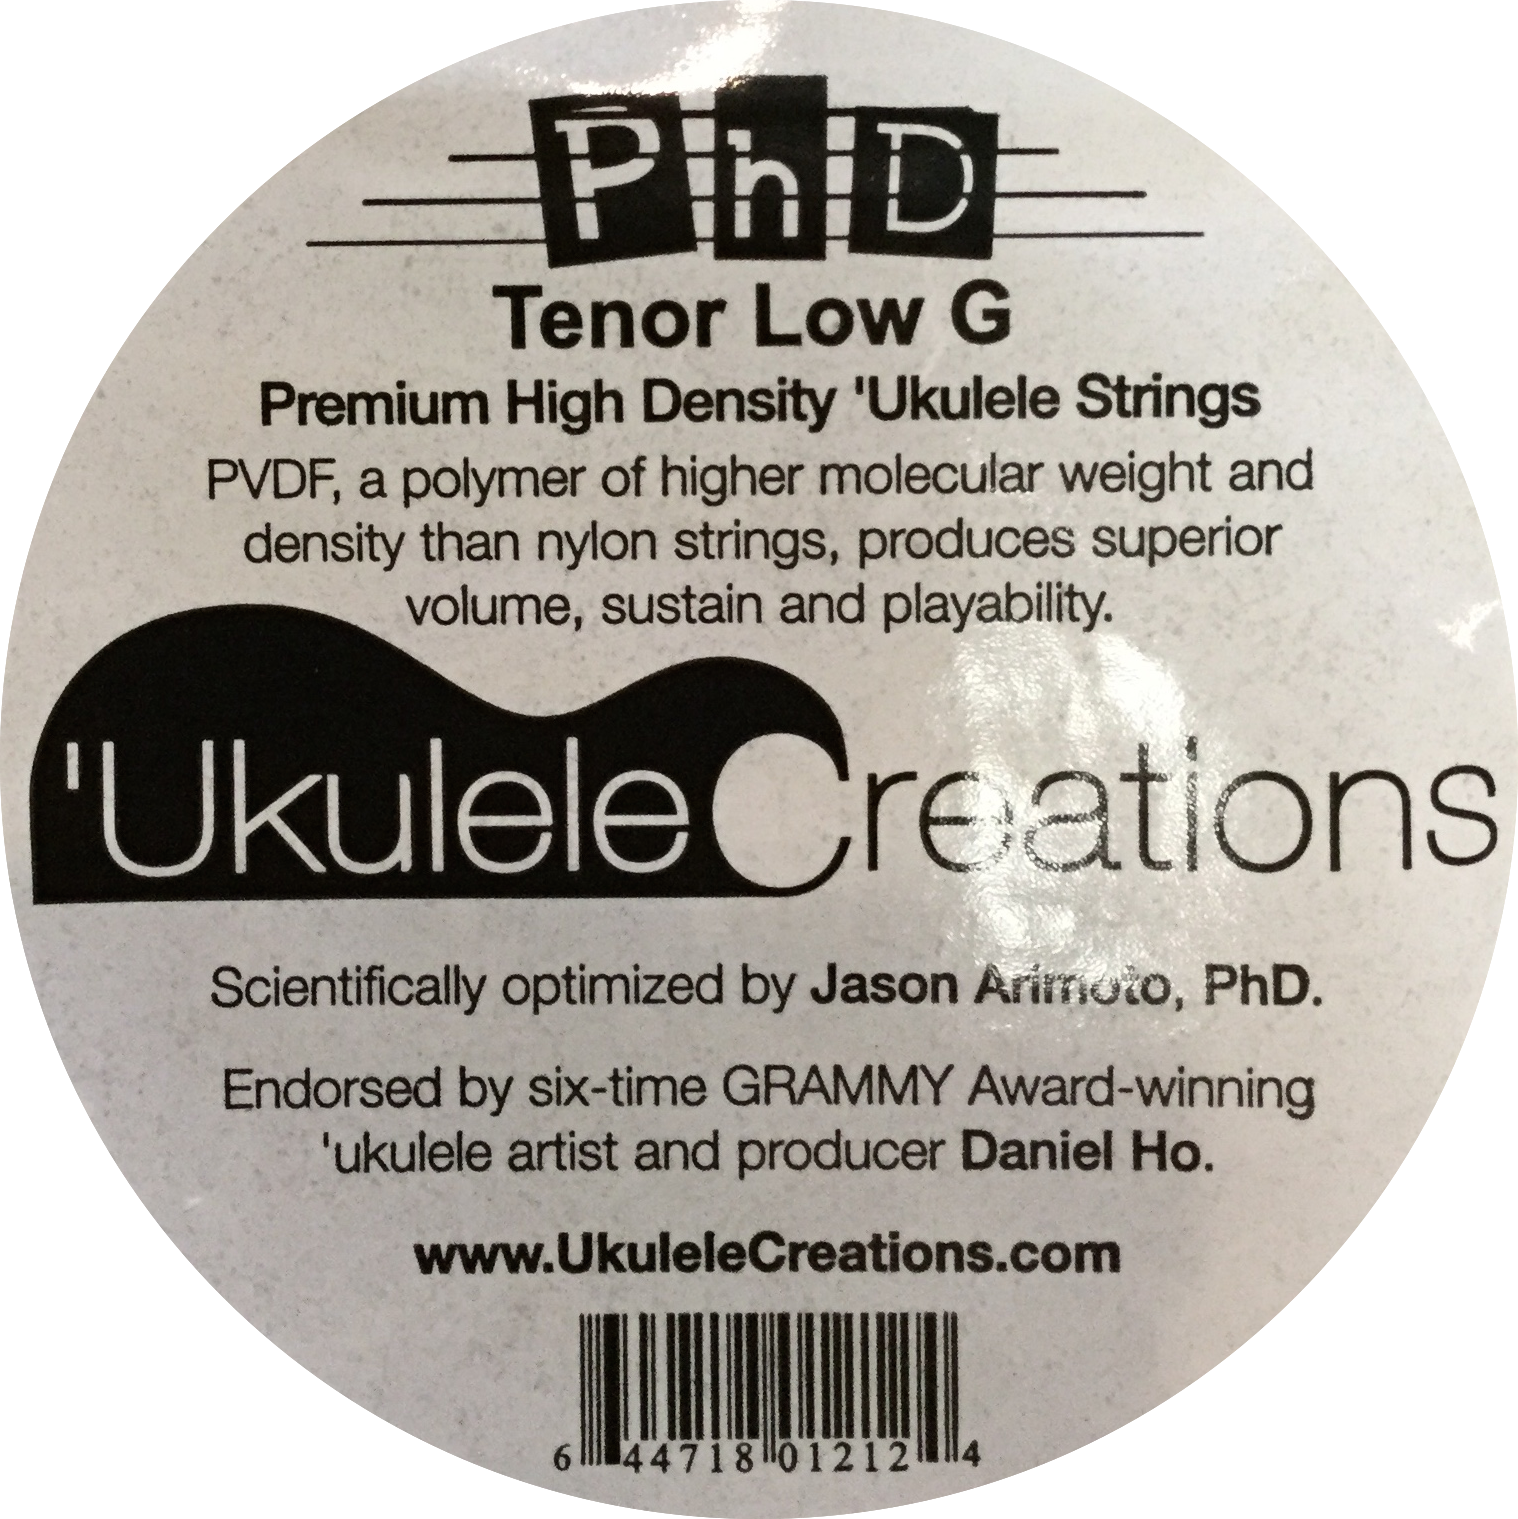 PhD Tenor Low G Ukulele Strings